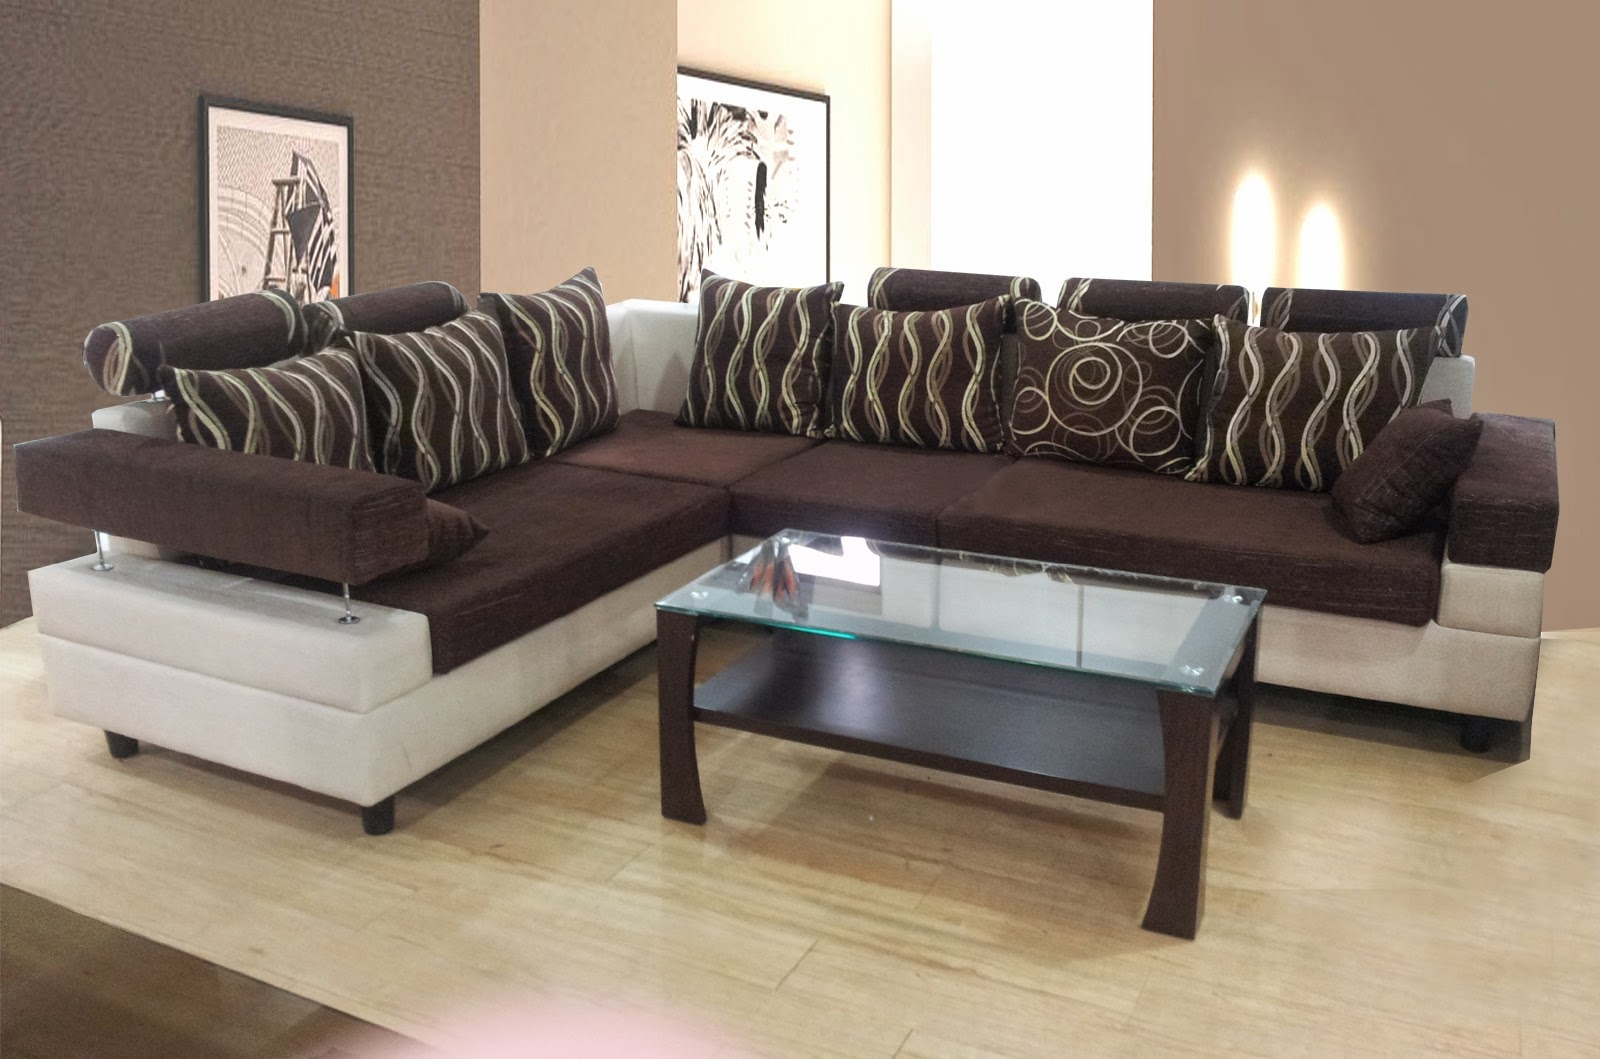 latest sofa designs in kenya sofa design. Black Bedroom Furniture Sets. Home Design Ideas